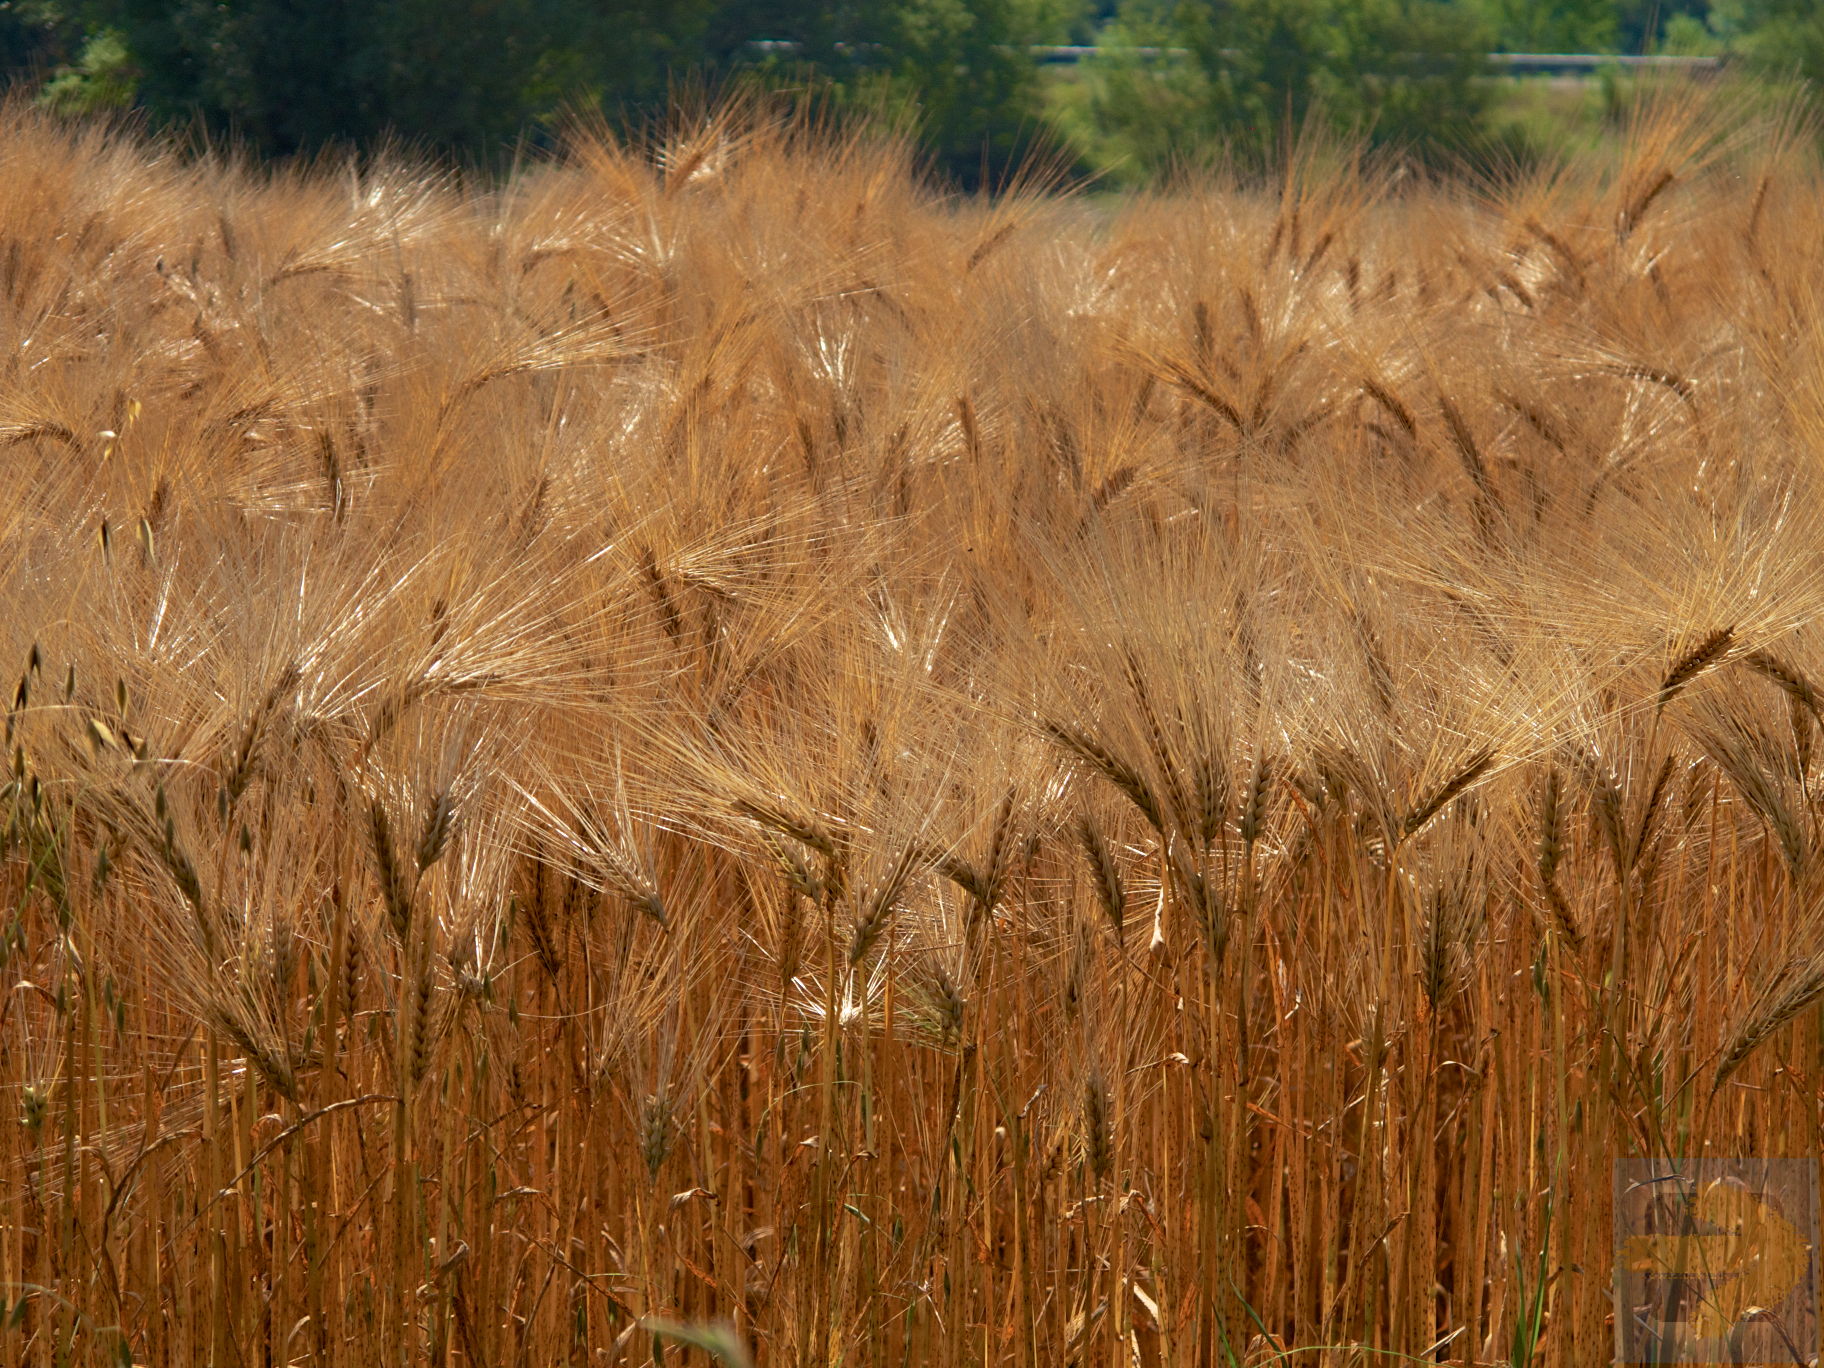 Fields of grain